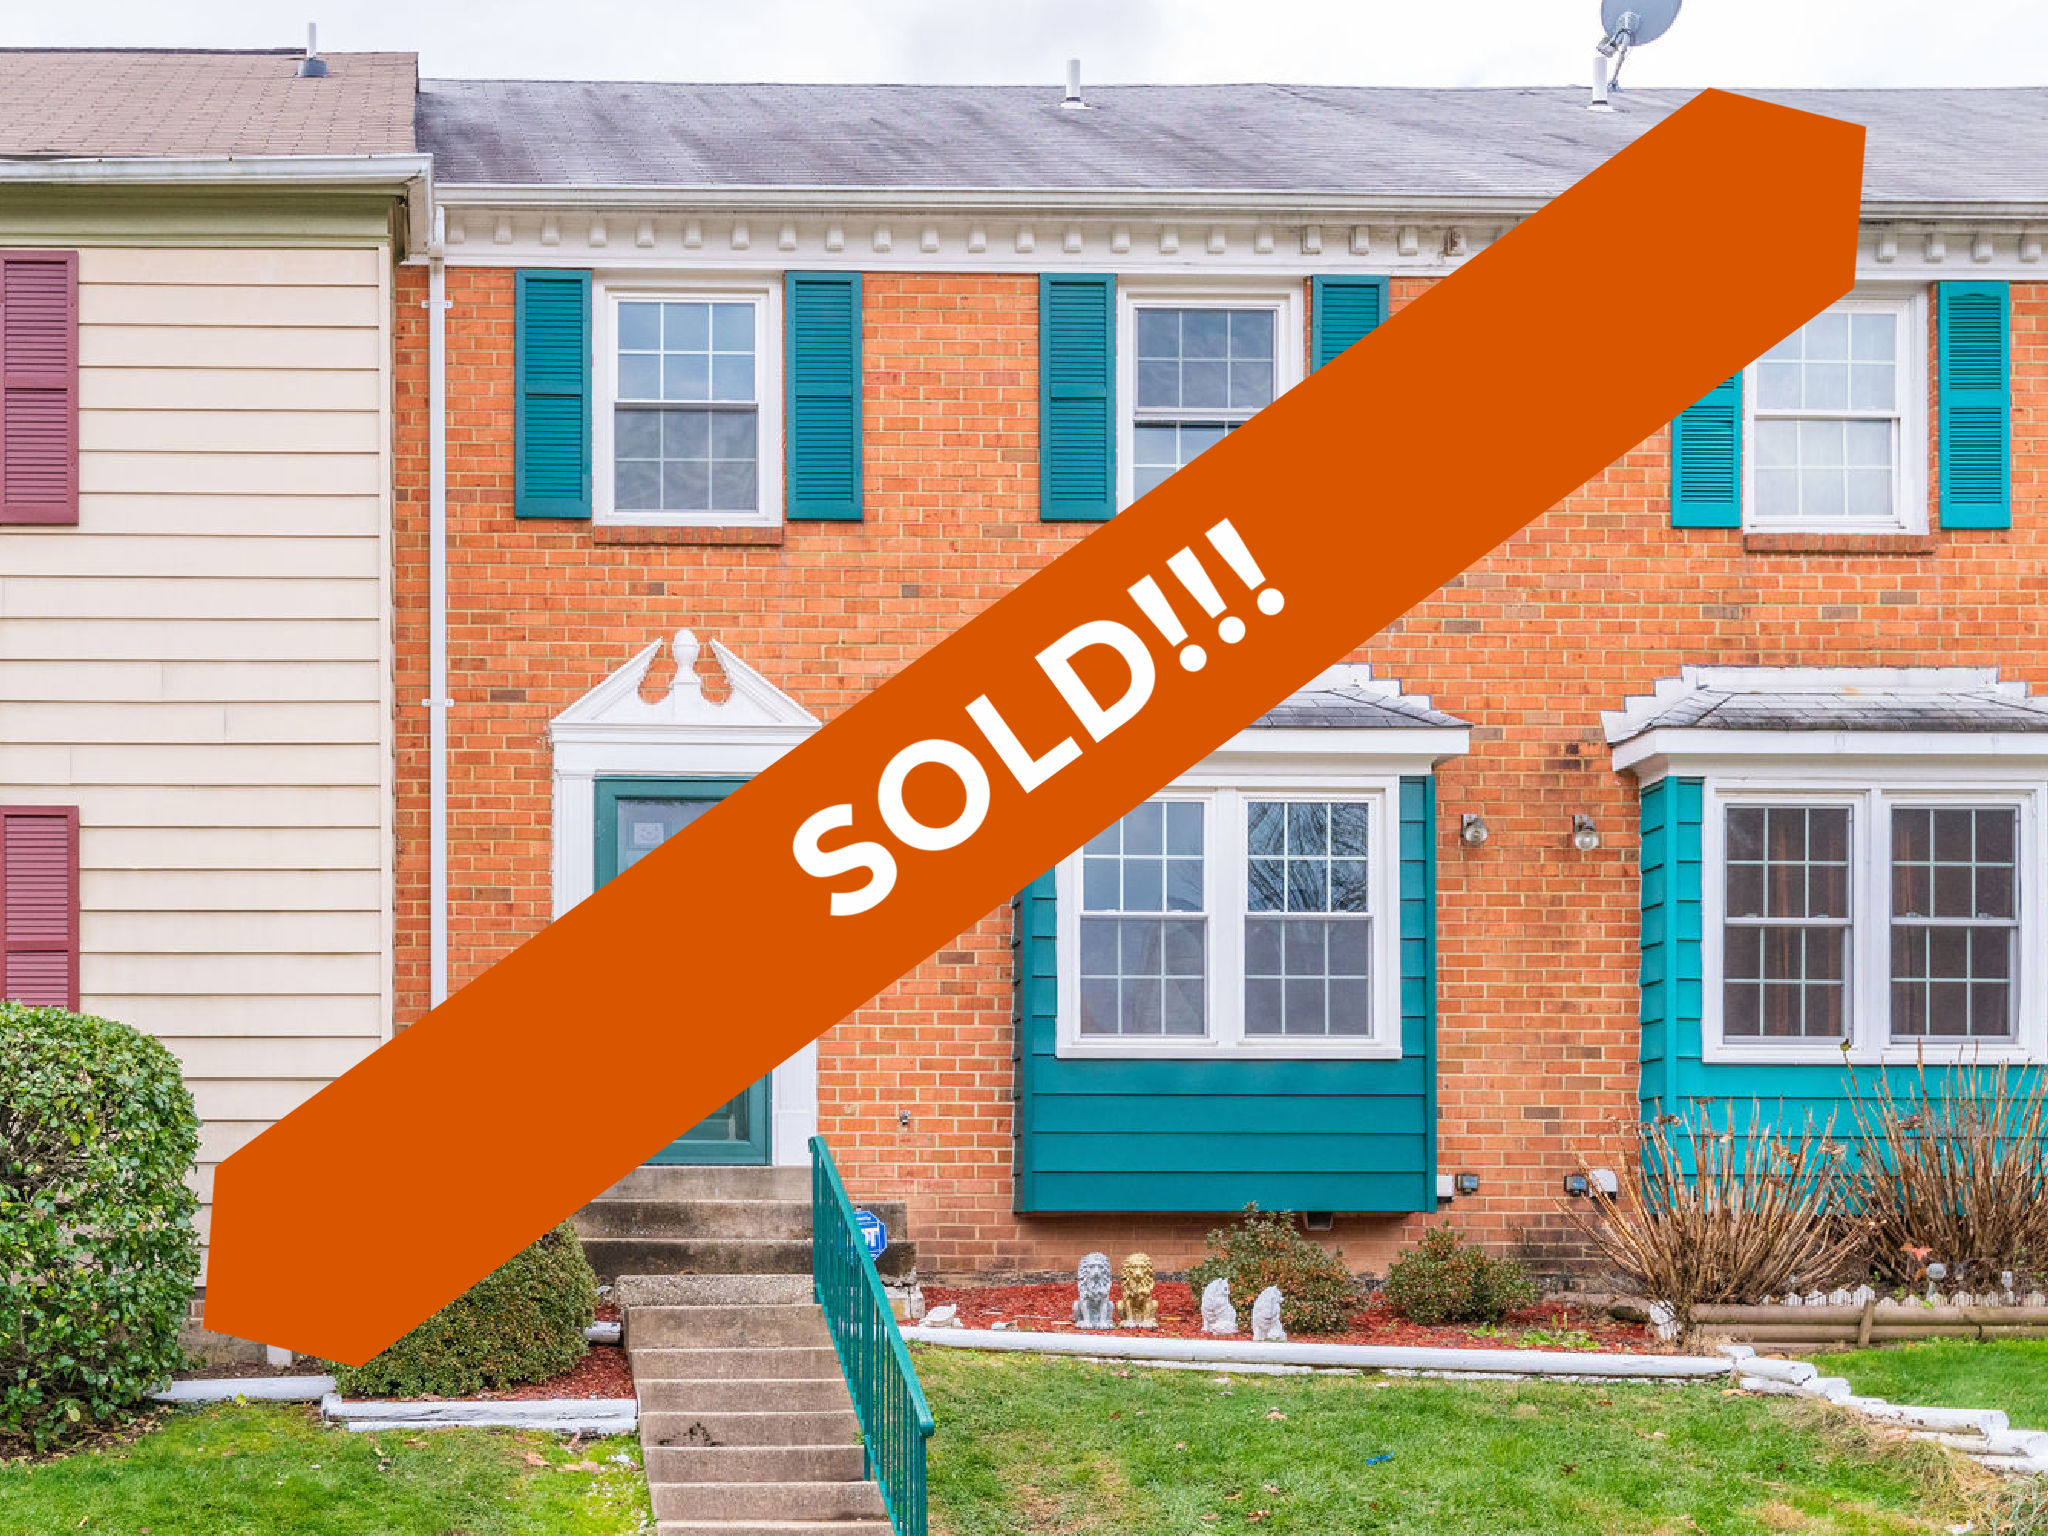 403 Maple Ct, Herndon- Sold